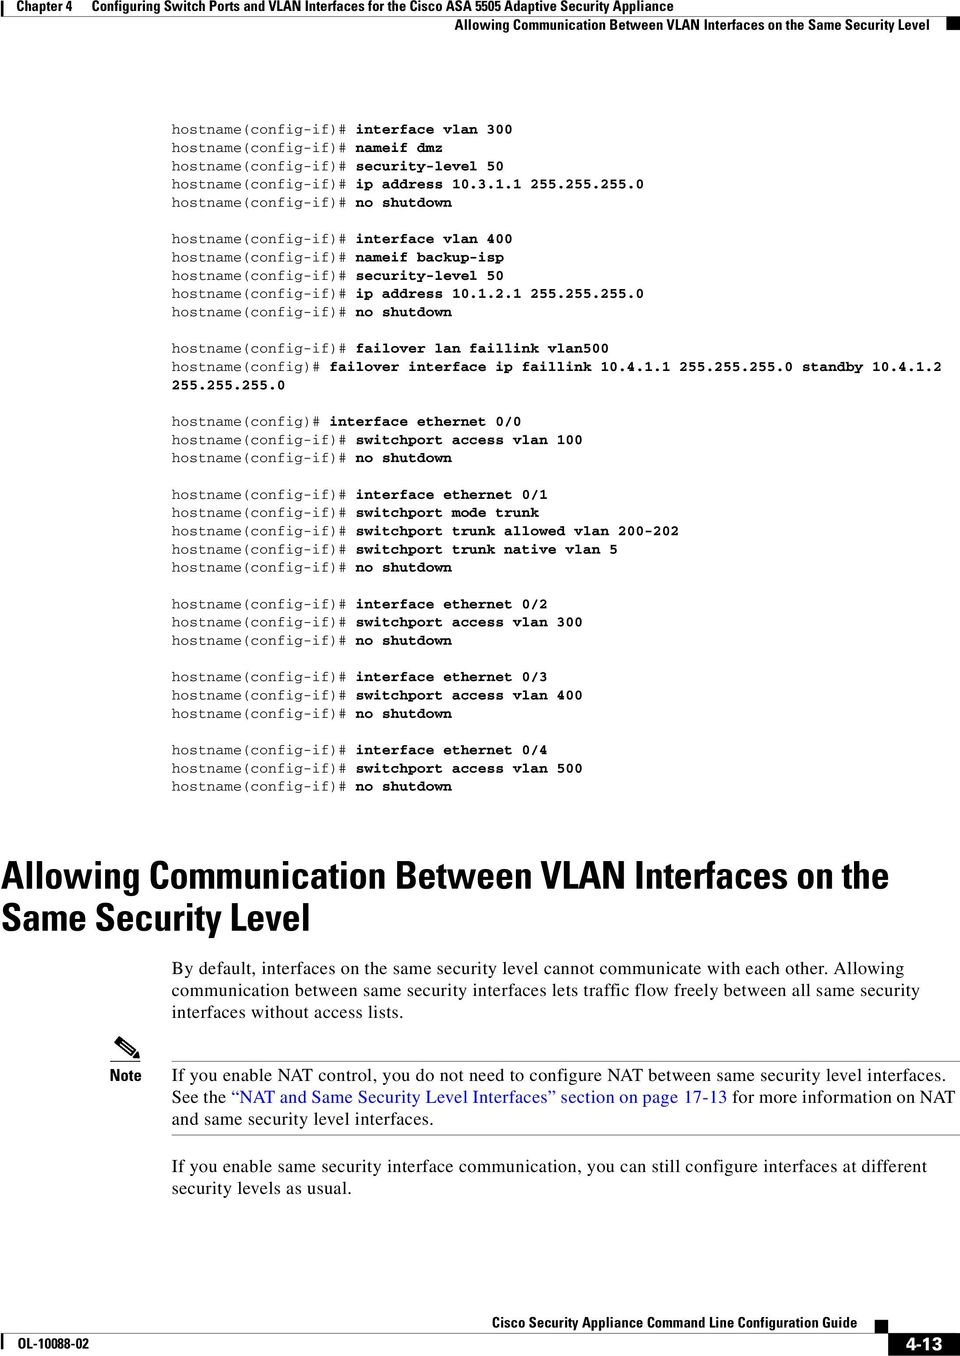 Configuring Switch Ports and VLAN Interfaces for the Cisco ASA 5505